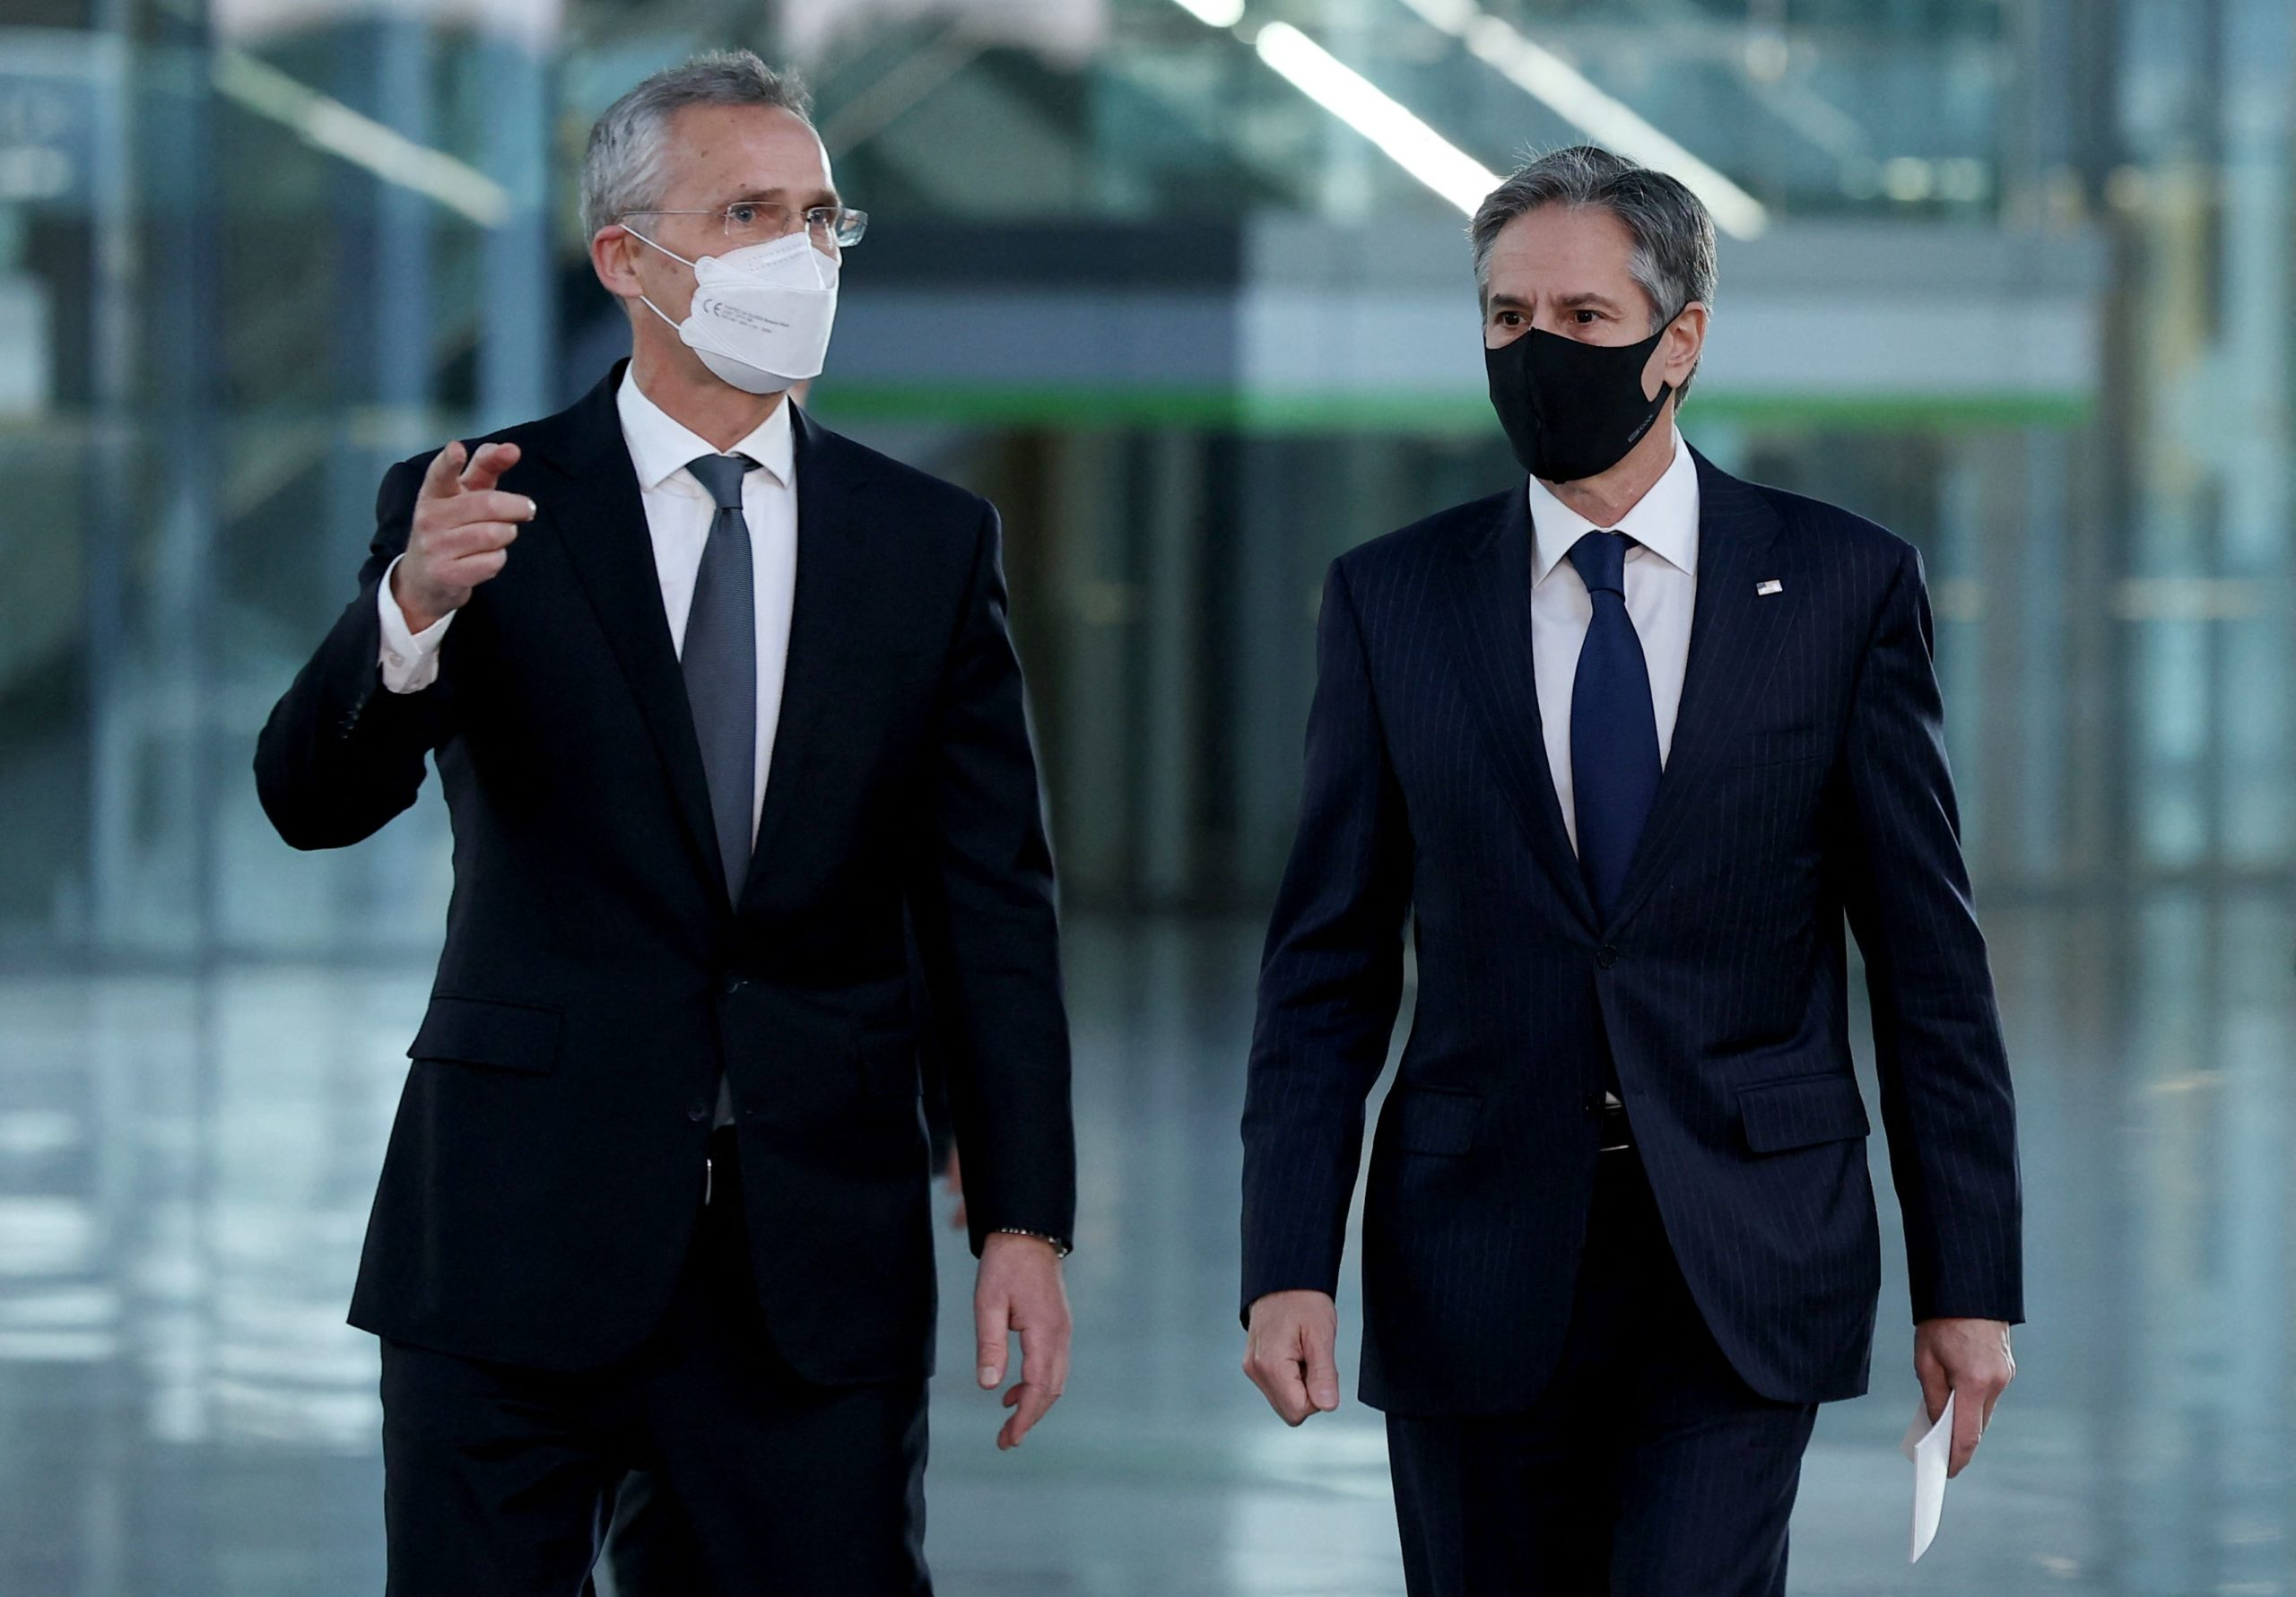 Secretary of State Antony Blinken and NATO's chief Jens Stoltenberg arrive for a press conference on Wednesday in Brussels, Belgium. (Kenzo Tribouillard/Pool/AFP via Getty Images)